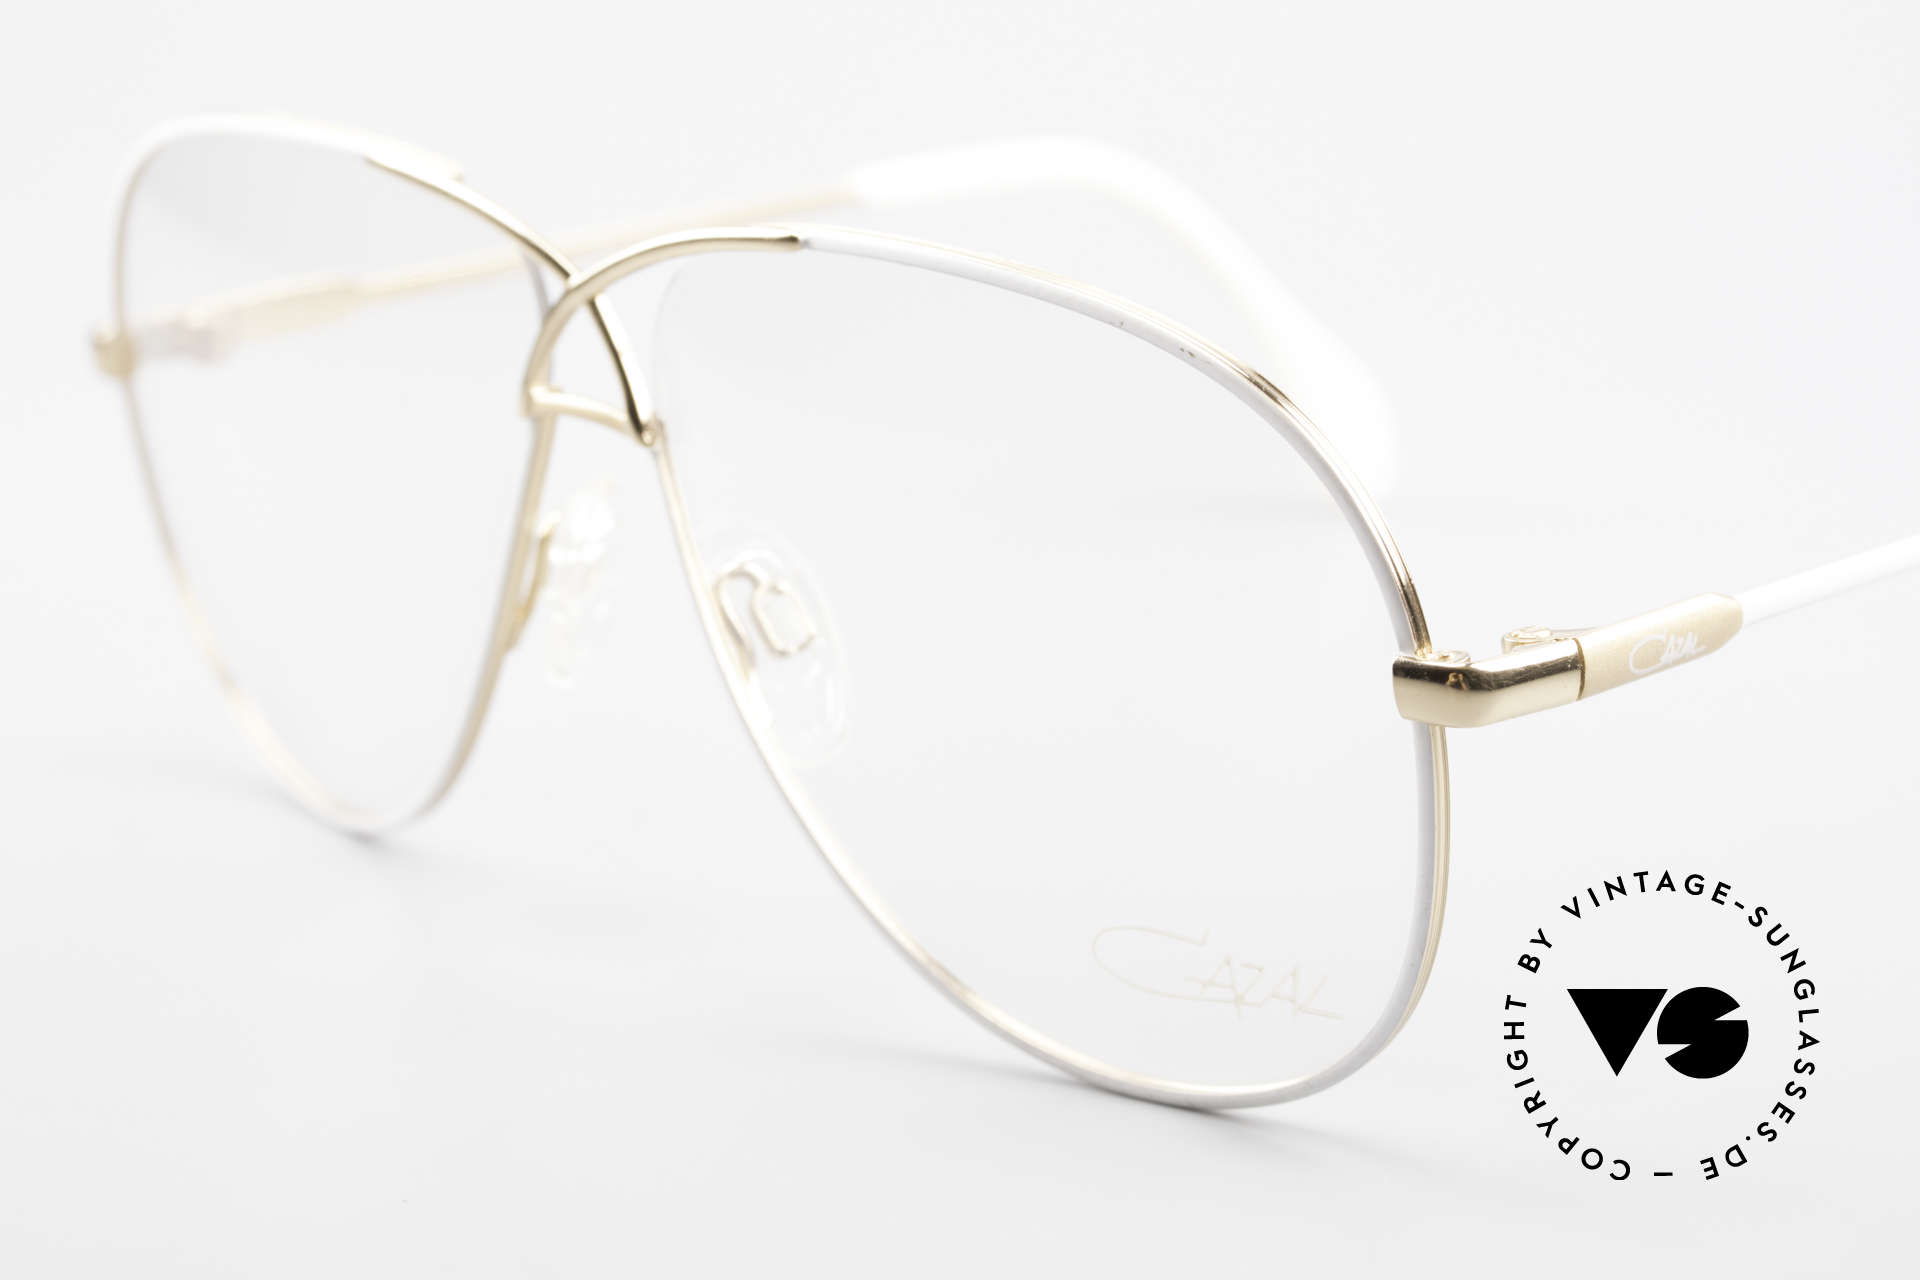 Cazal 728 Aviator Style Vintage Glasses, noble appearance, timeless coloring and great fit, Made for Men and Women